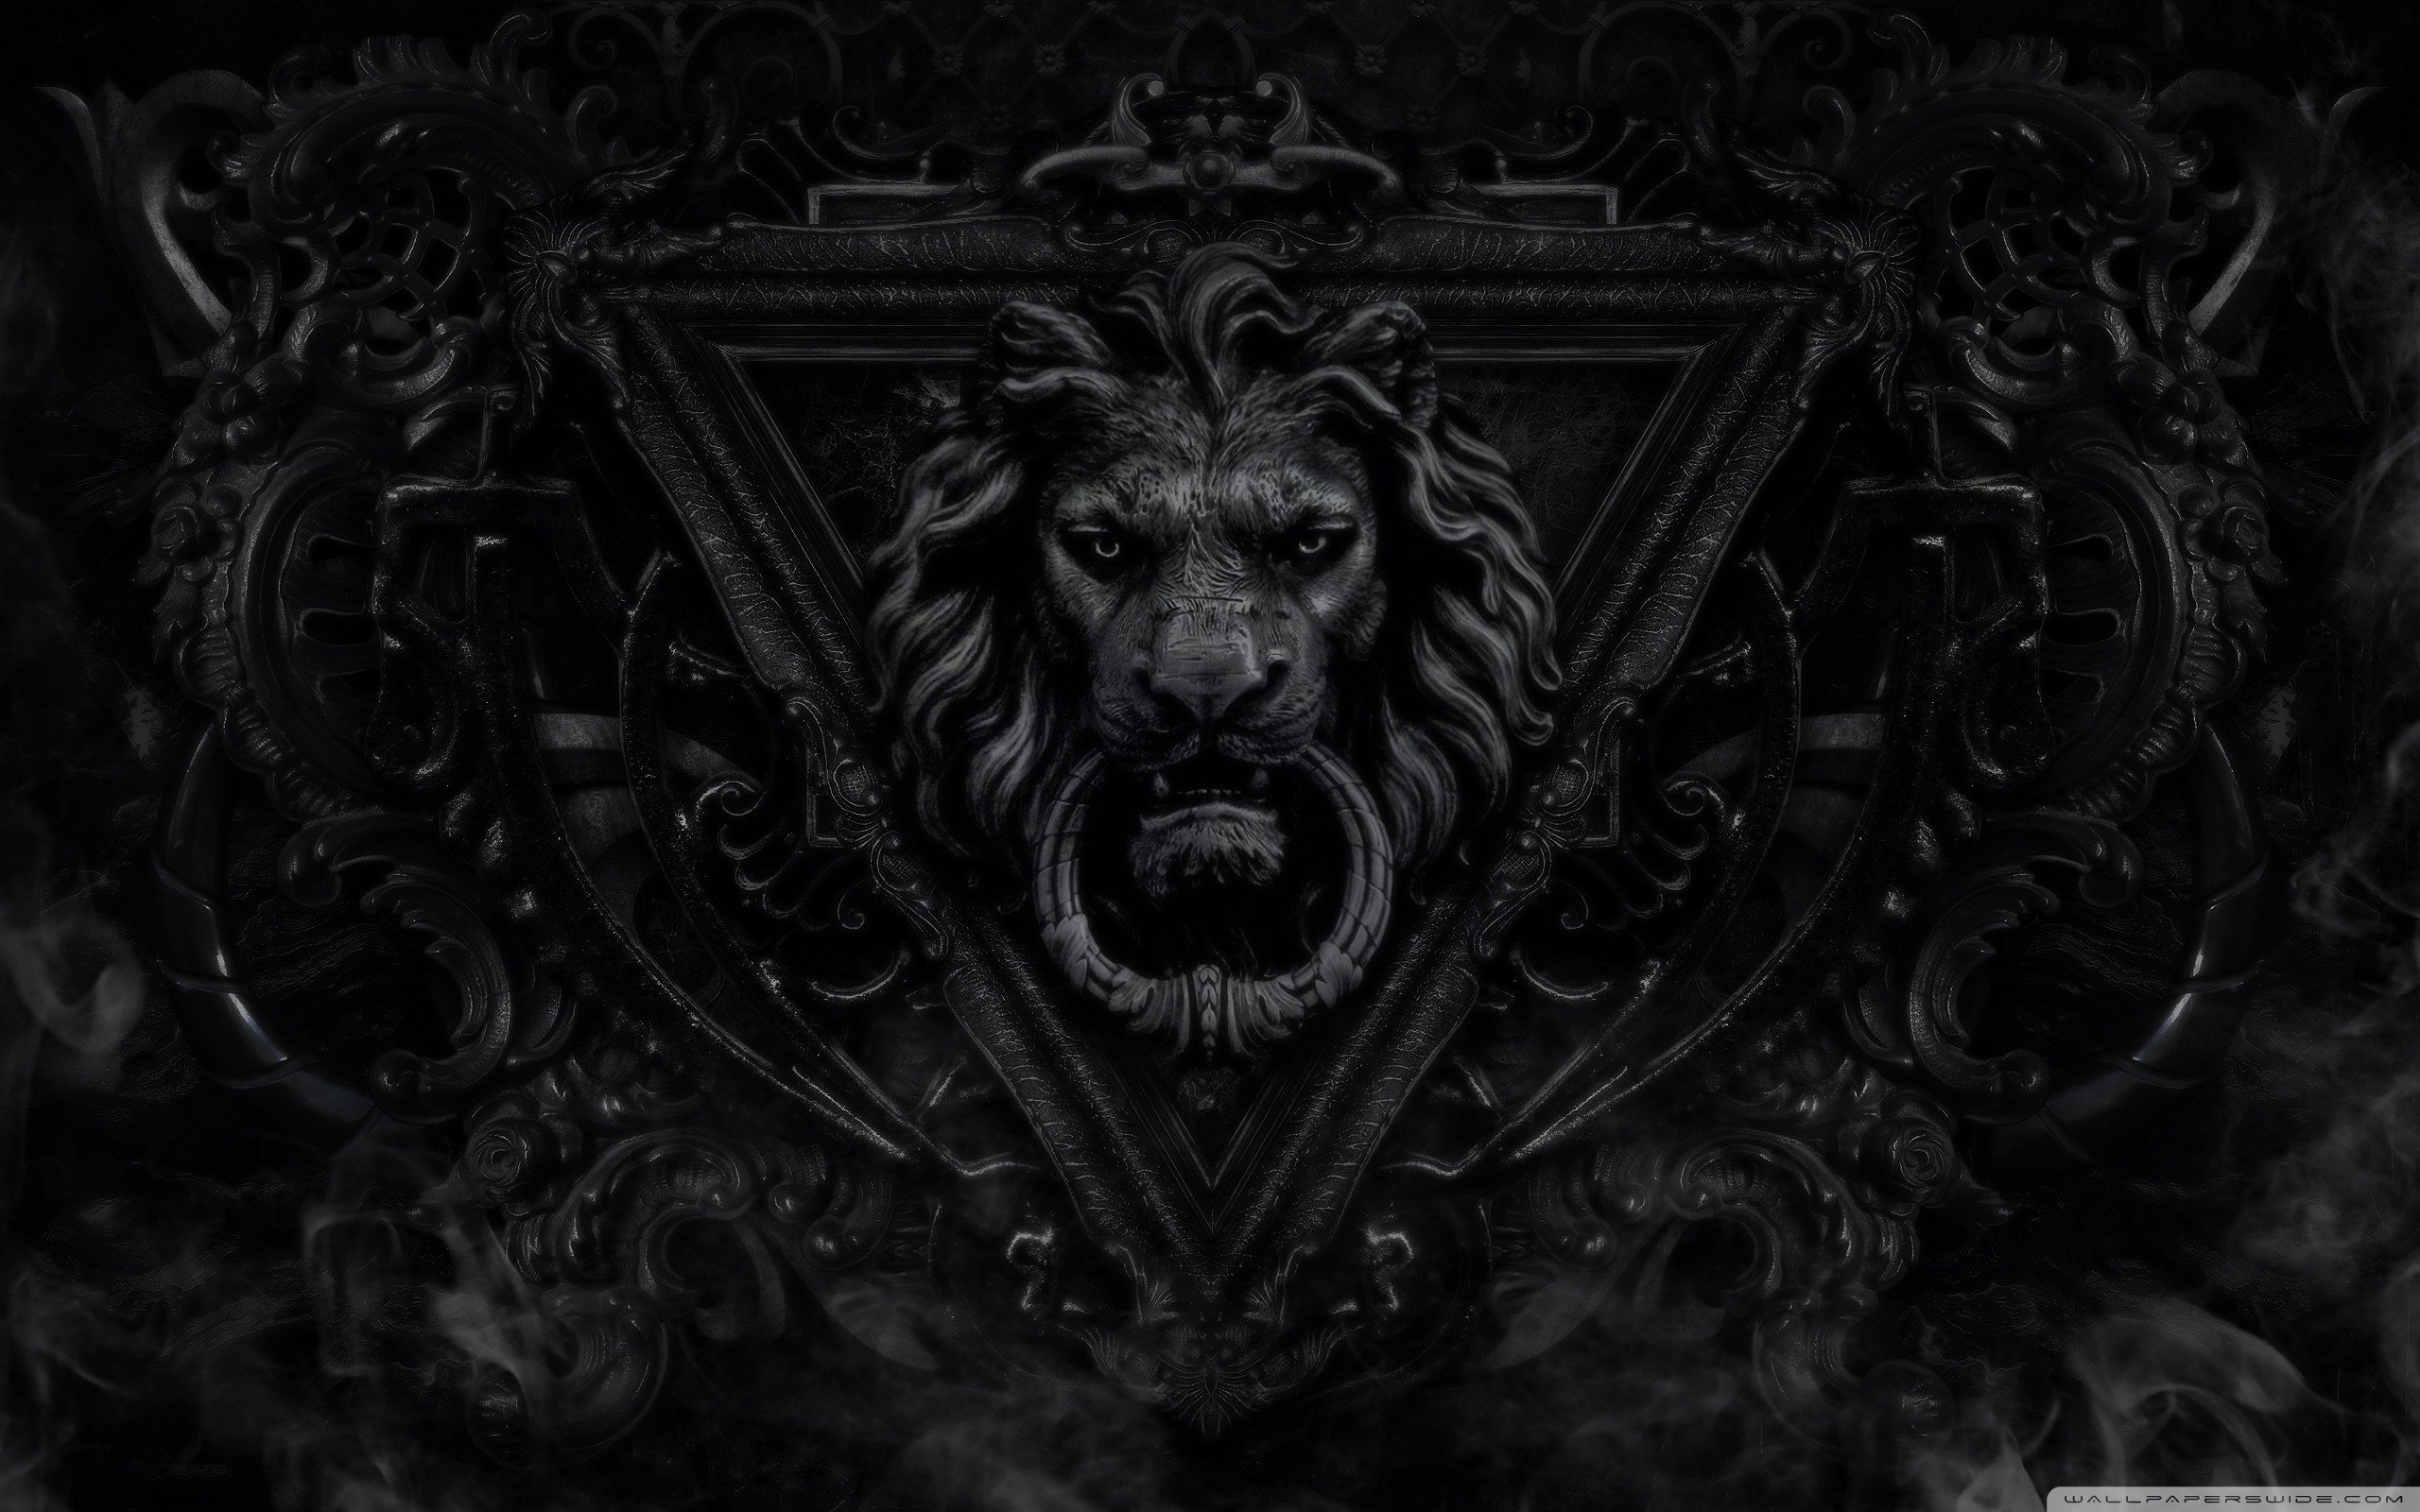 Dark gothic lion wallpaper 2560x1600 wallpaper 2560x1600 238504 2560x1600